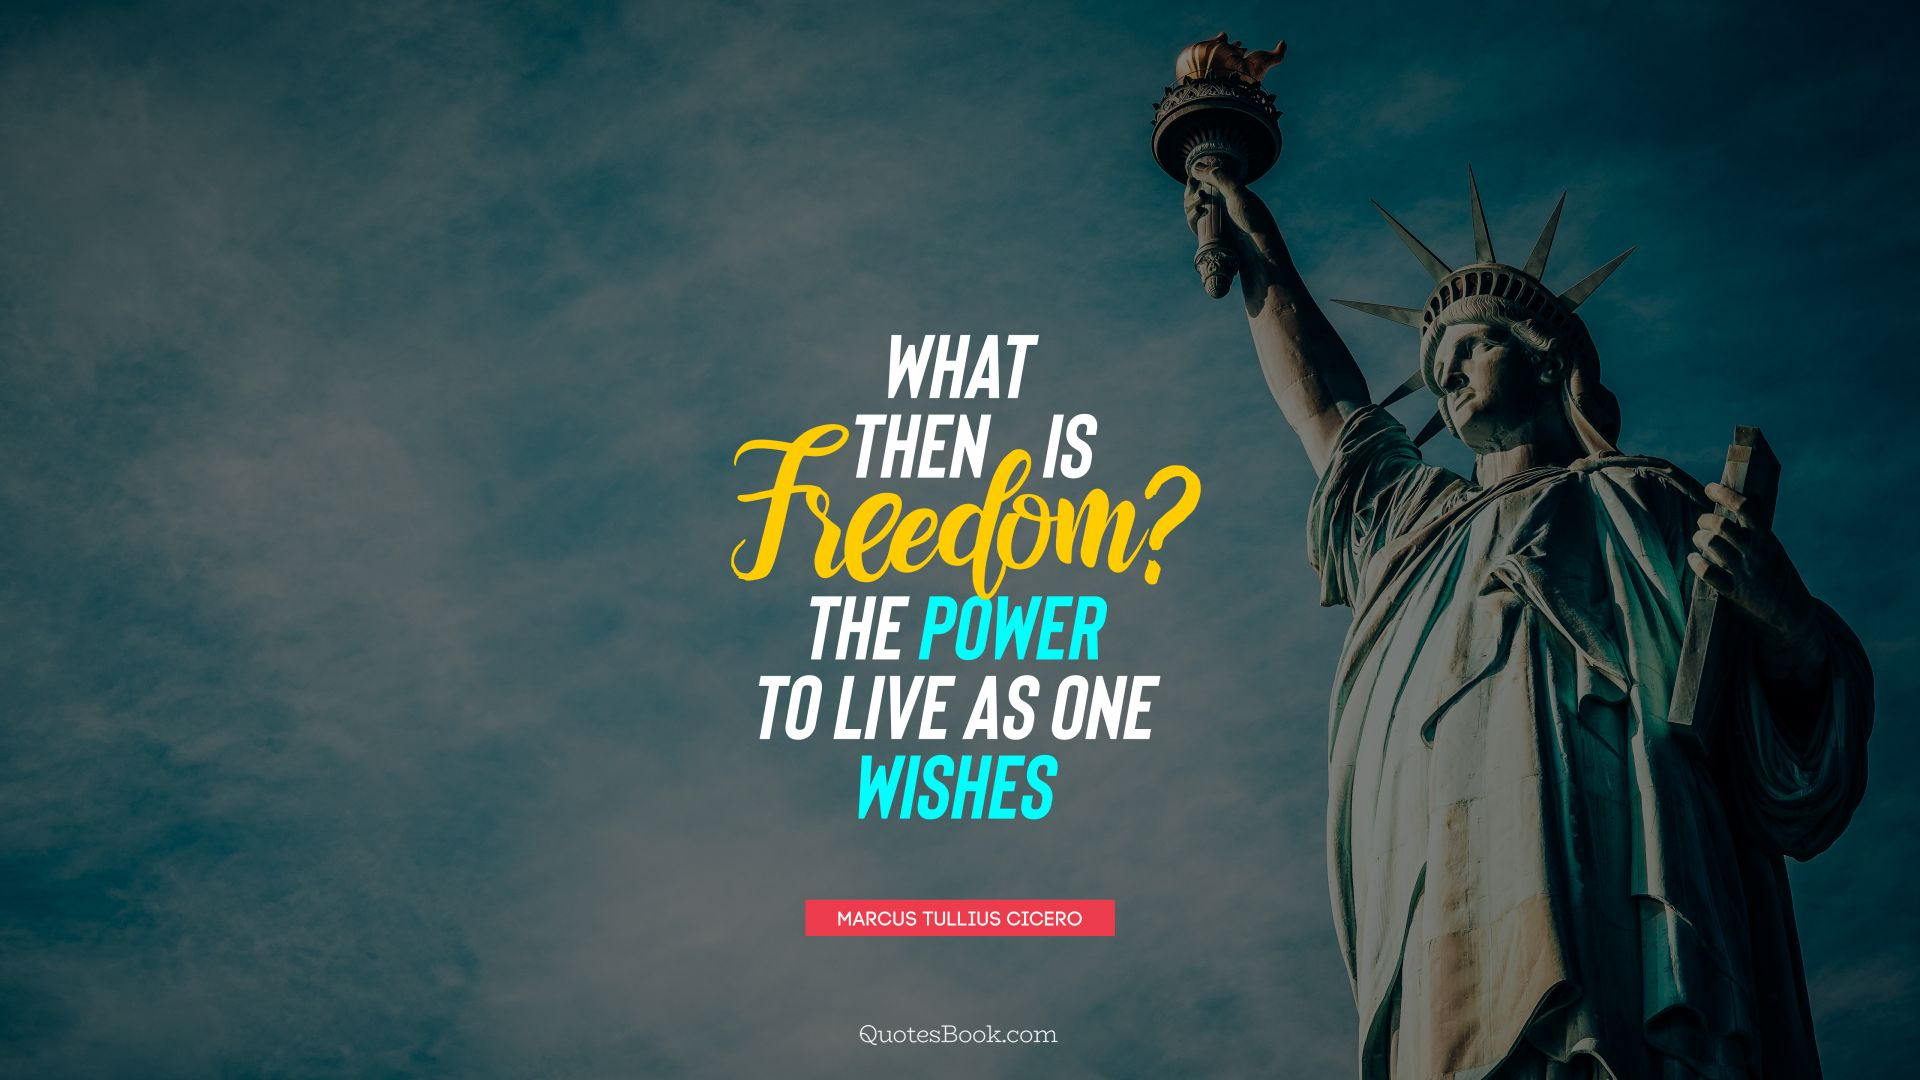 What then is freedom? The power to live as one wishes. - Quote by Marcus Tullius Cicero